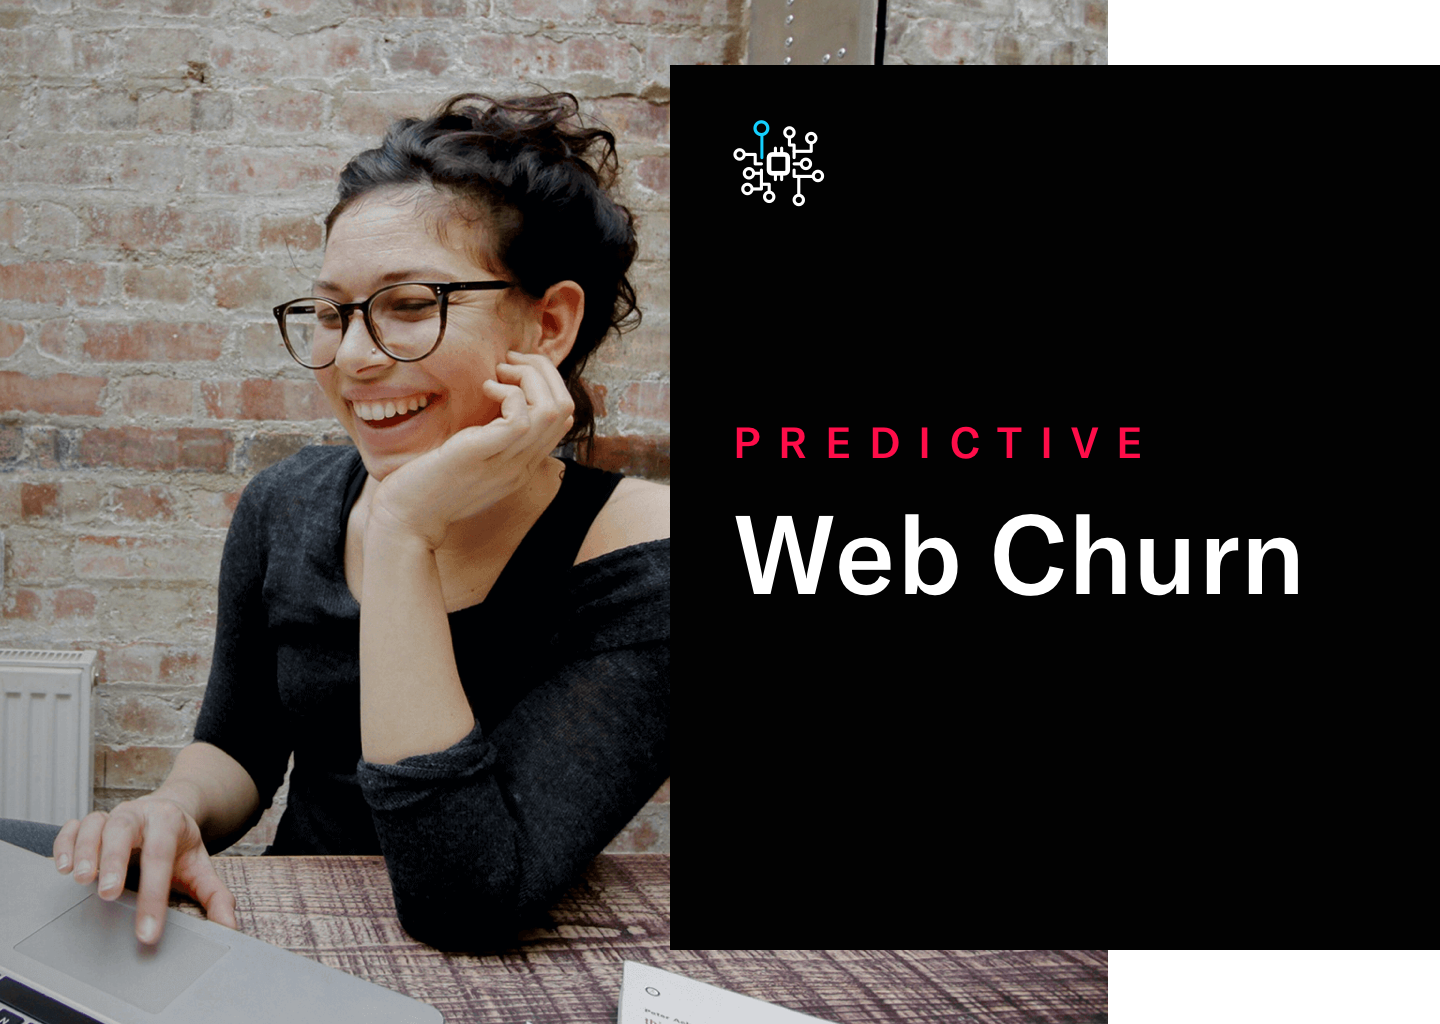 Predictive Web Churn